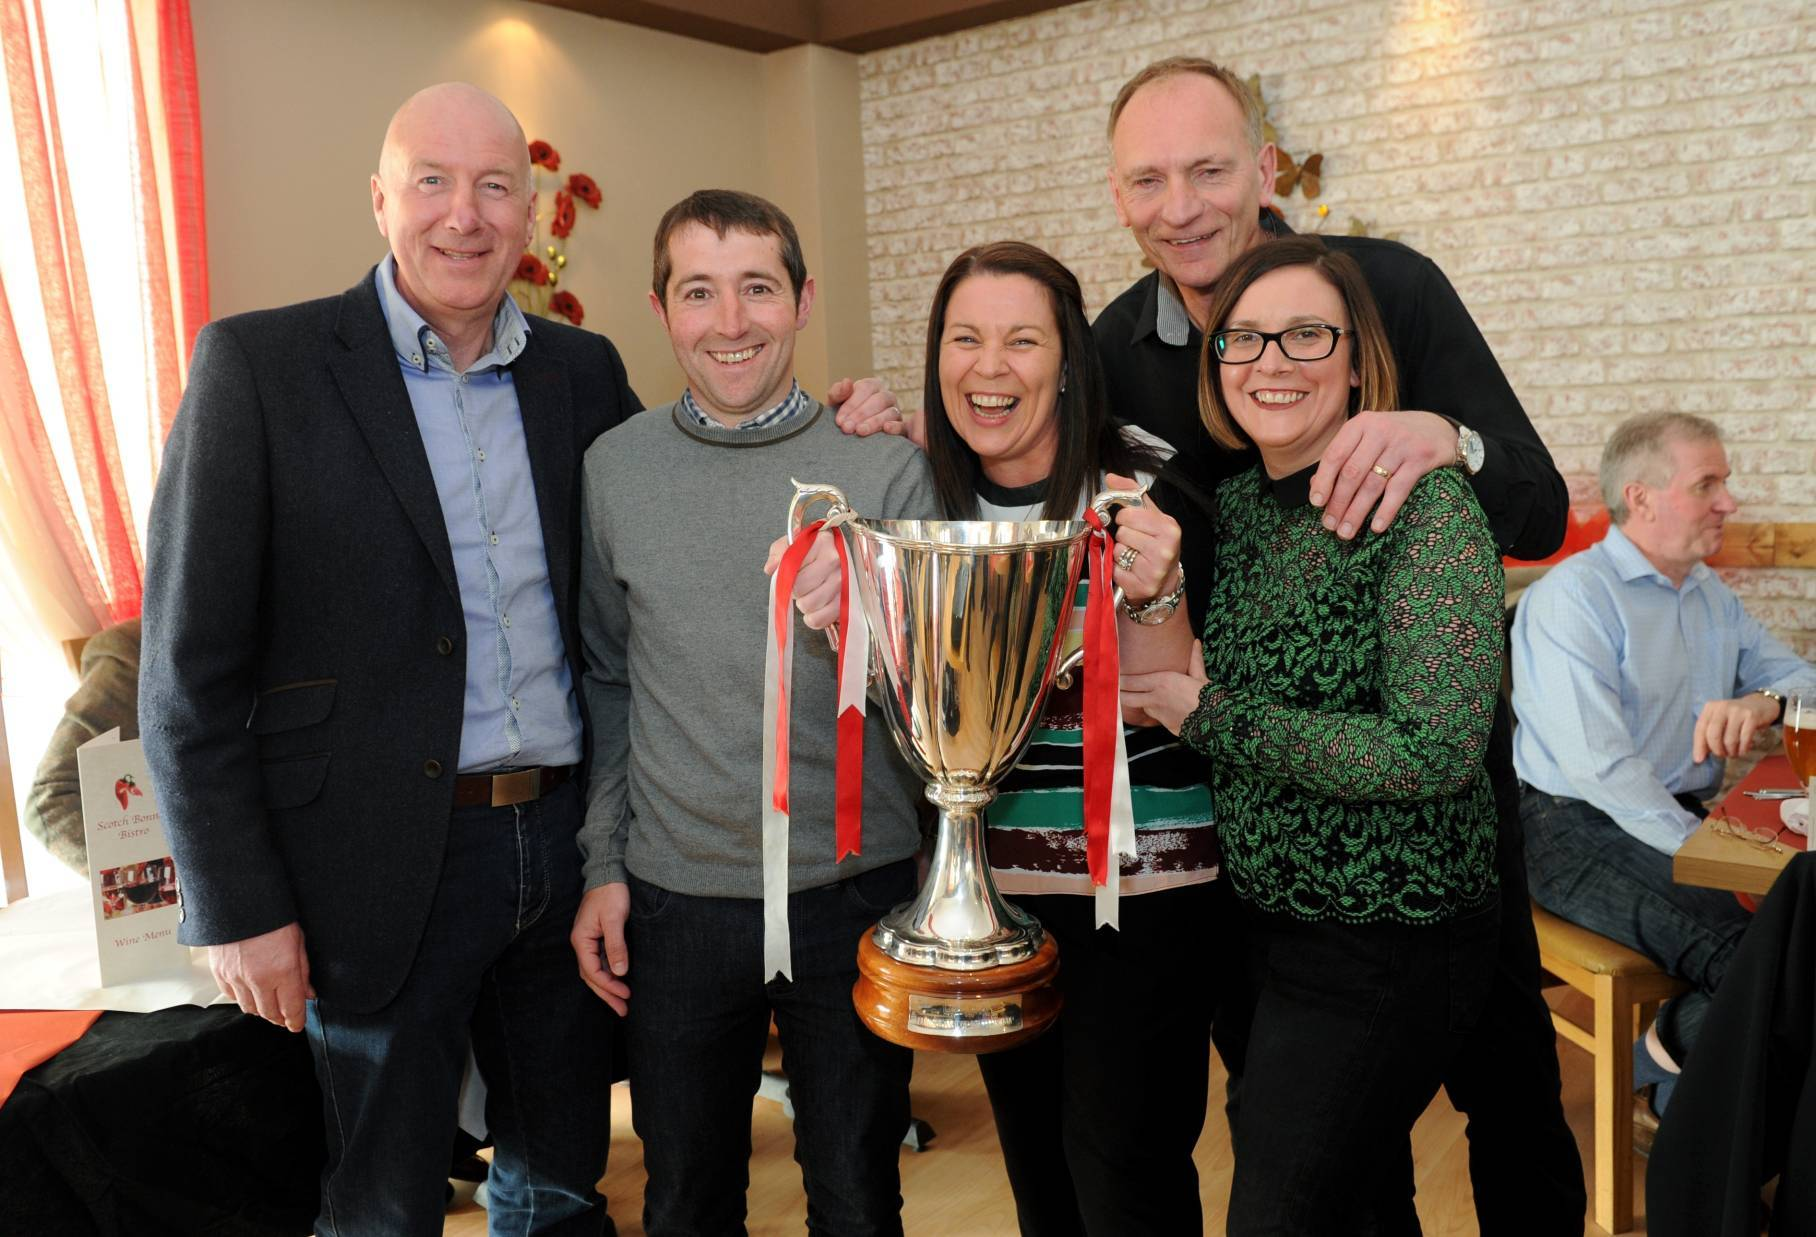 Neil Simpson and Jim Leighton with guests, from left, Bruce Harwood, Lynne Mitchell and Gail Gammie with the trophy.